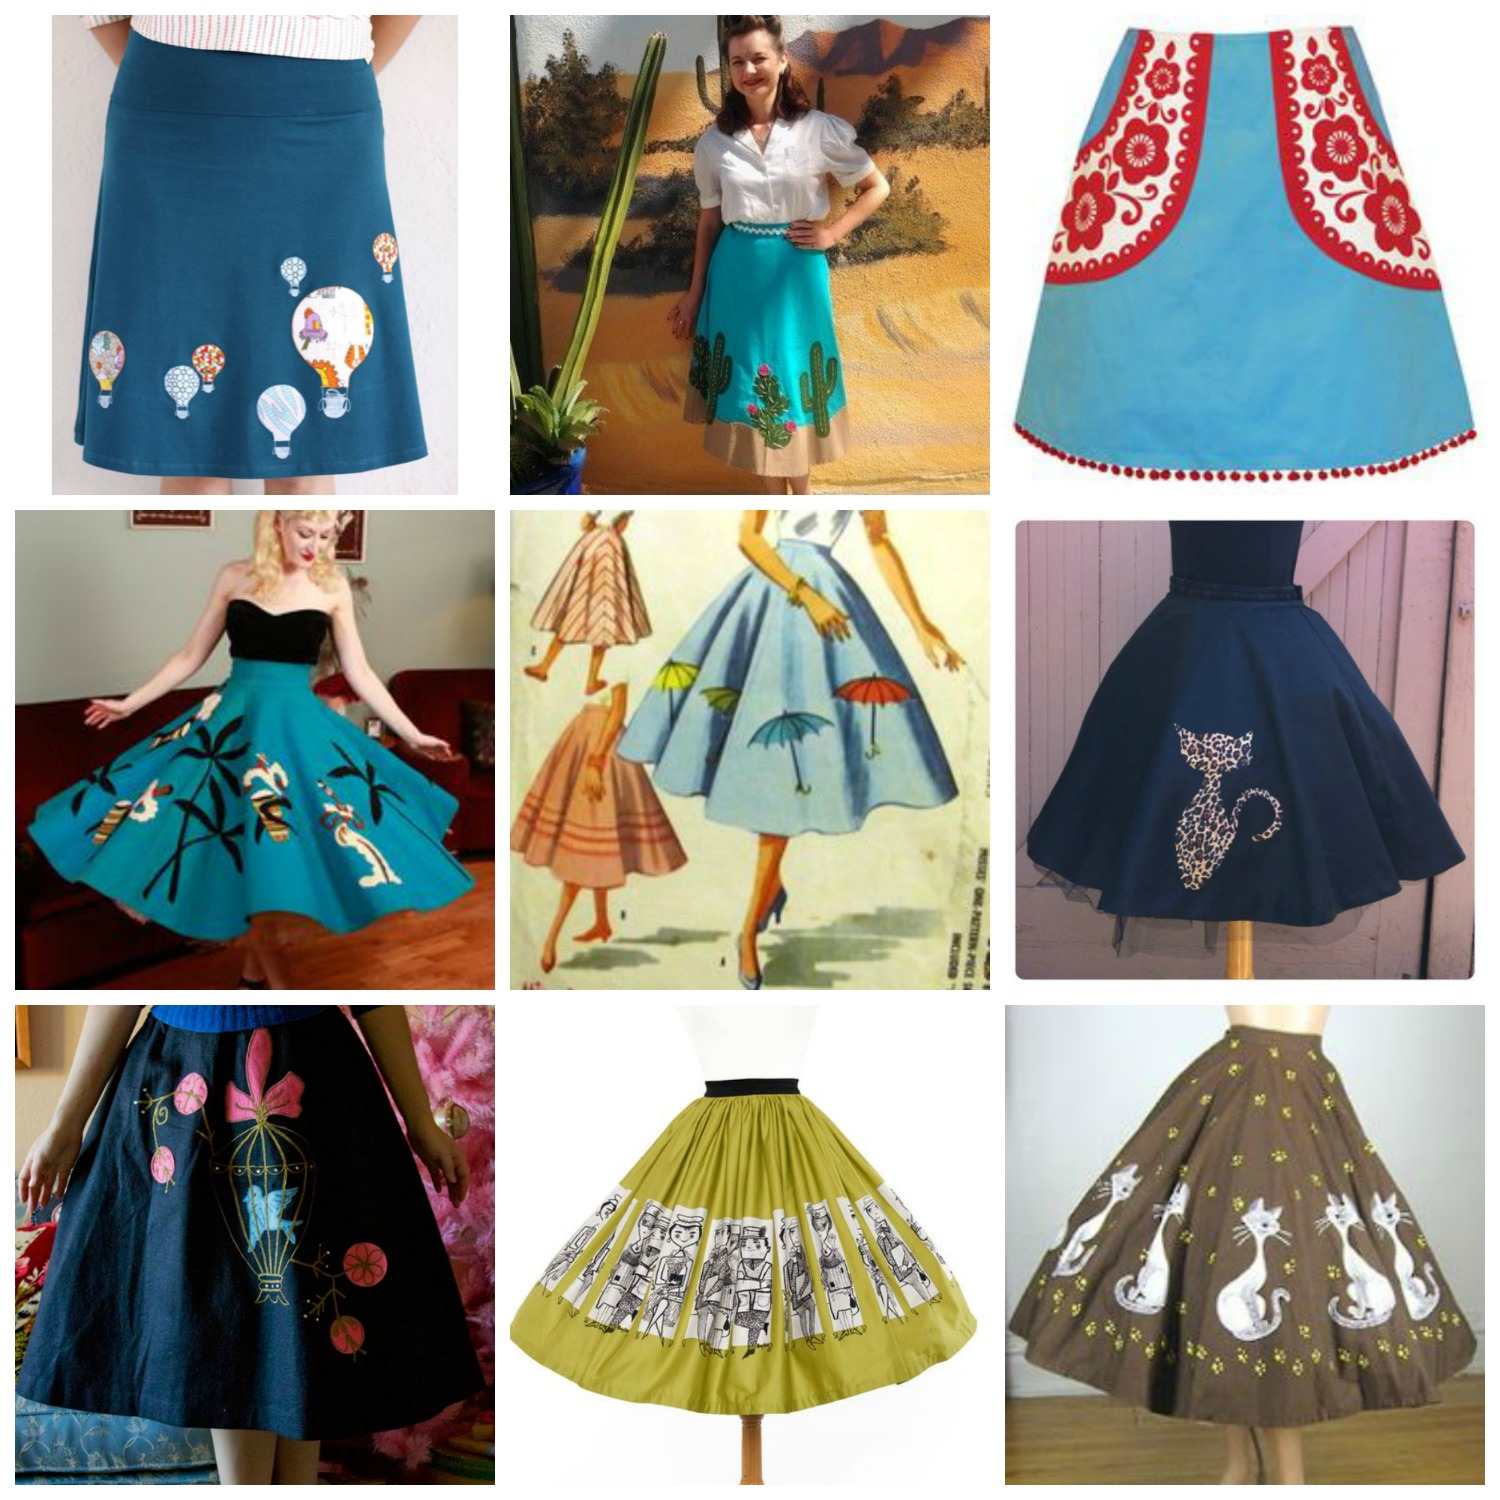 Sew: Rainy Day Skirt Refashion {Adding Whimsy with Applique & Covered Buttons}